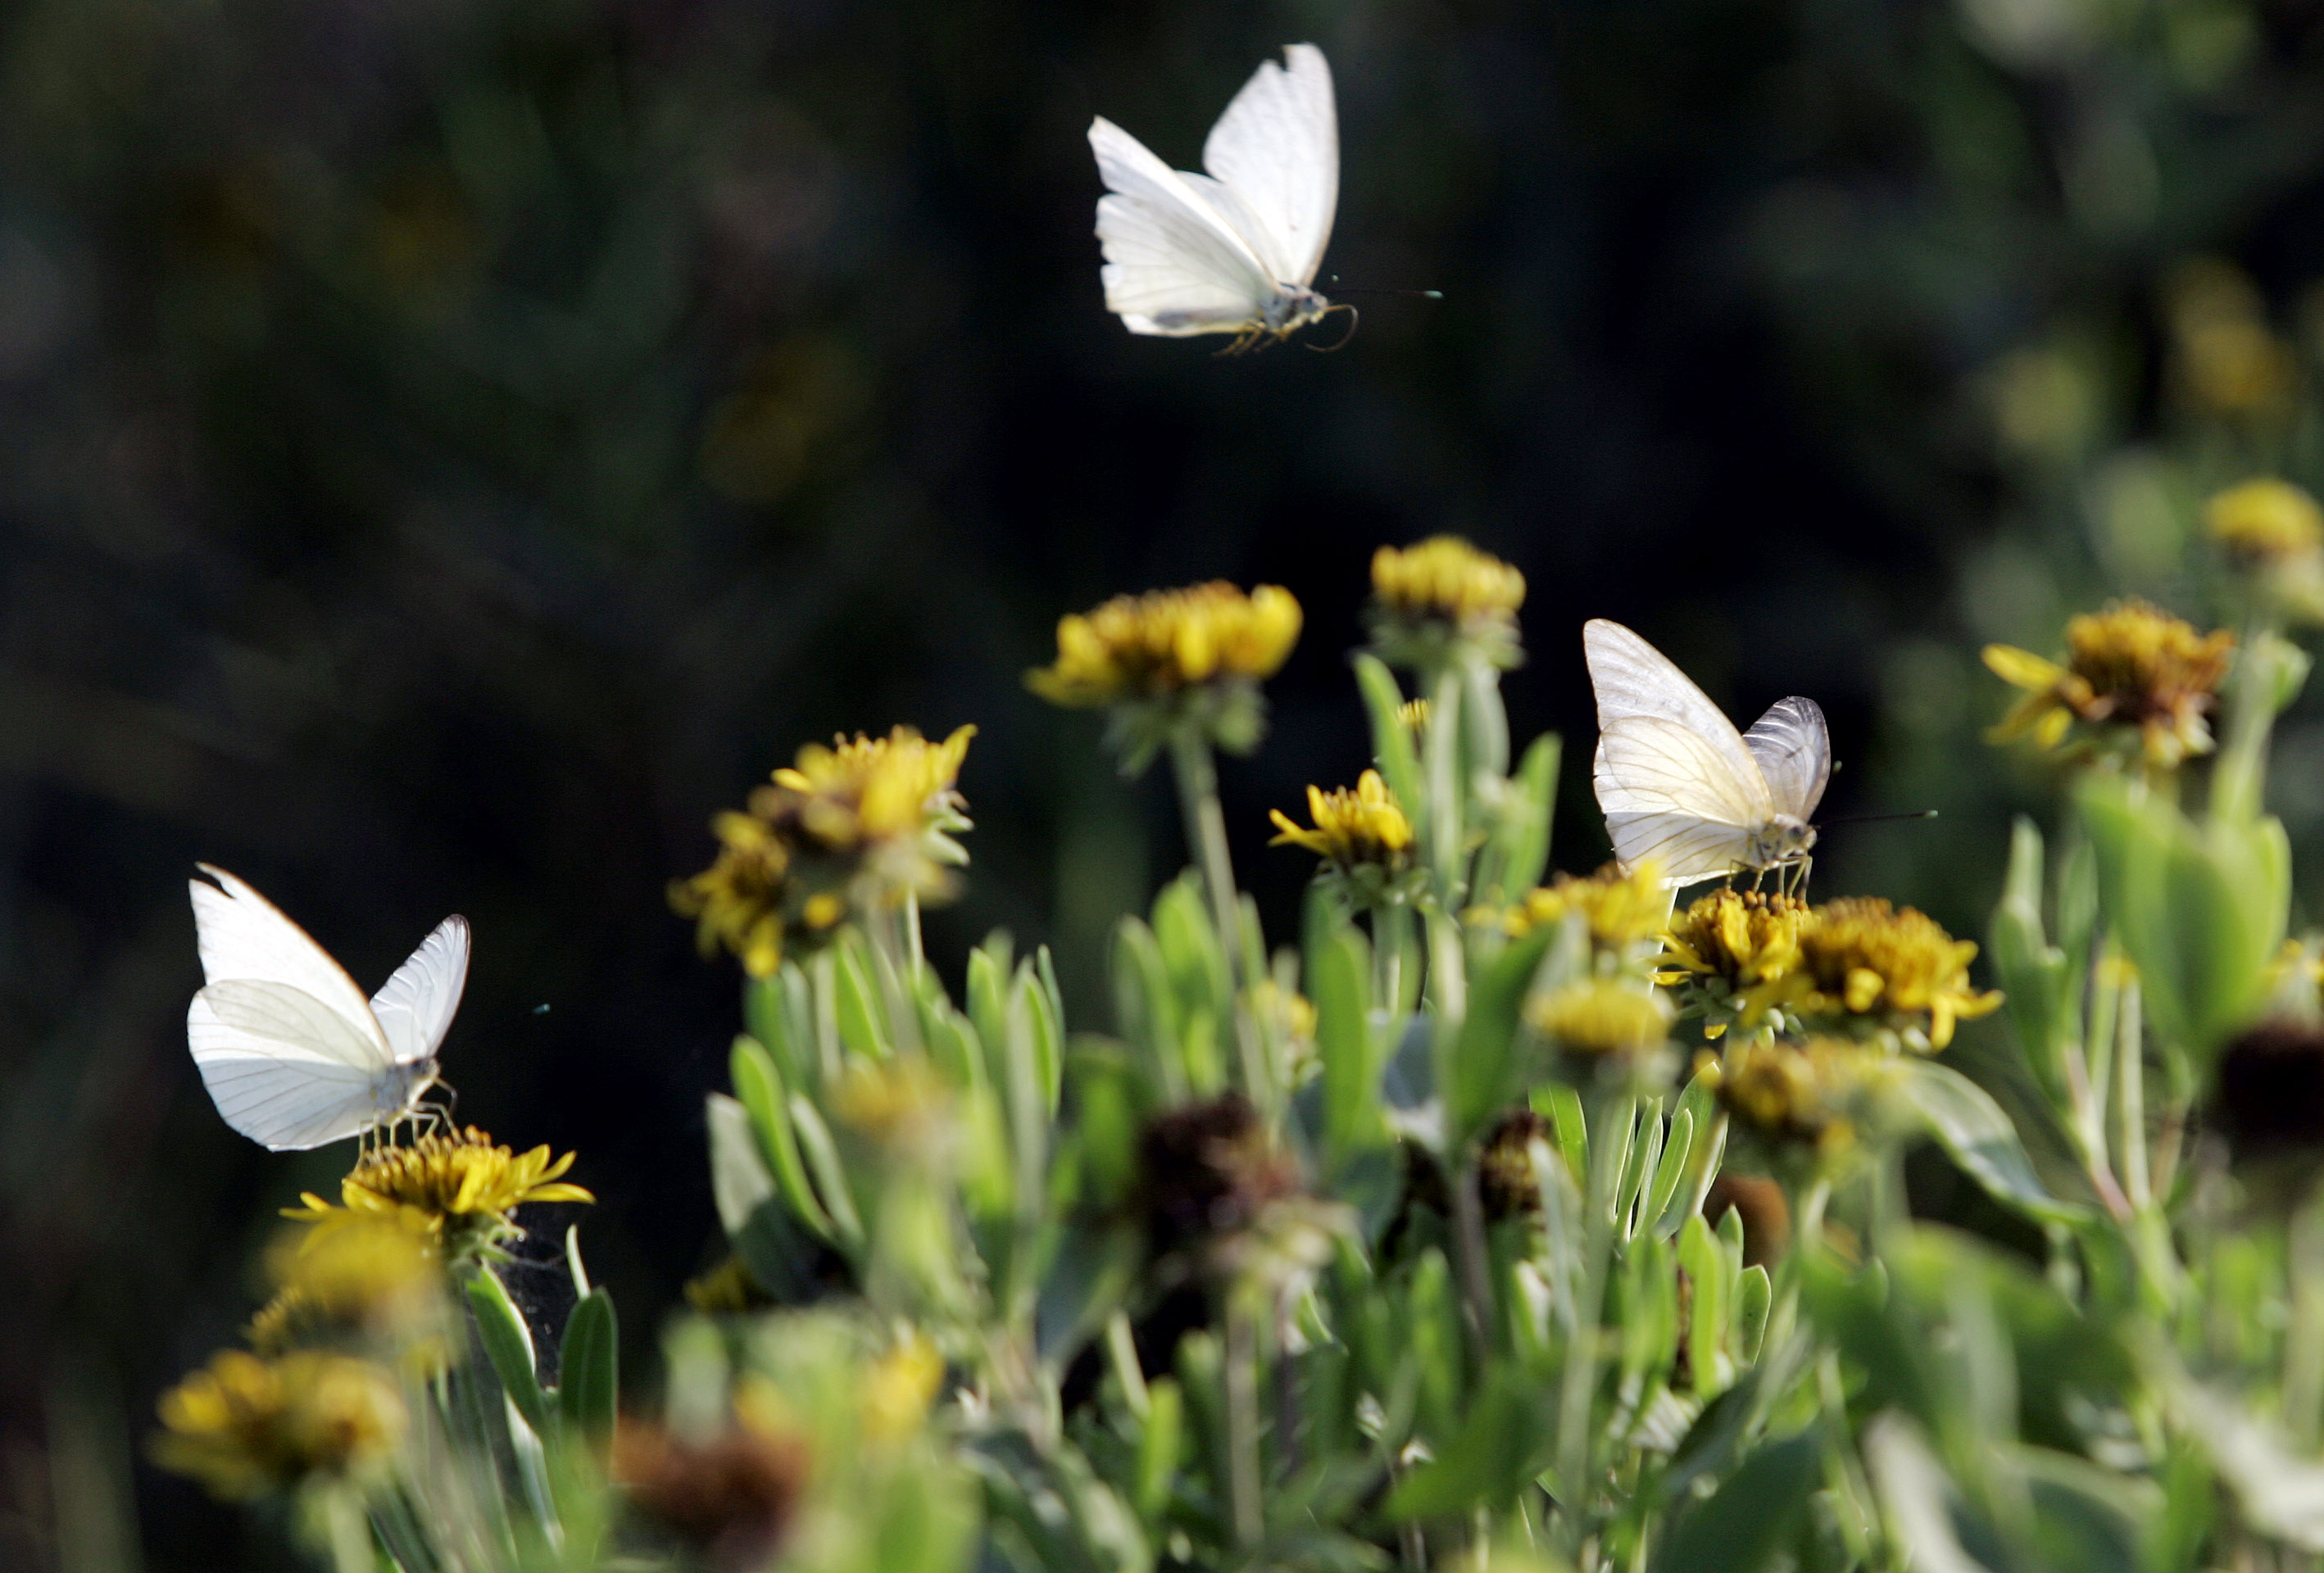 Butterflies land on wild flowers at Boca Chica, Texas, where the Rio Grand meets the Gulf of Mexico, May 10, 2007. Wildlife enthusiasts fear the Santa Ana National Wildlife Refuge could be ruined by the fences and adjacent roads the U.S. government p...